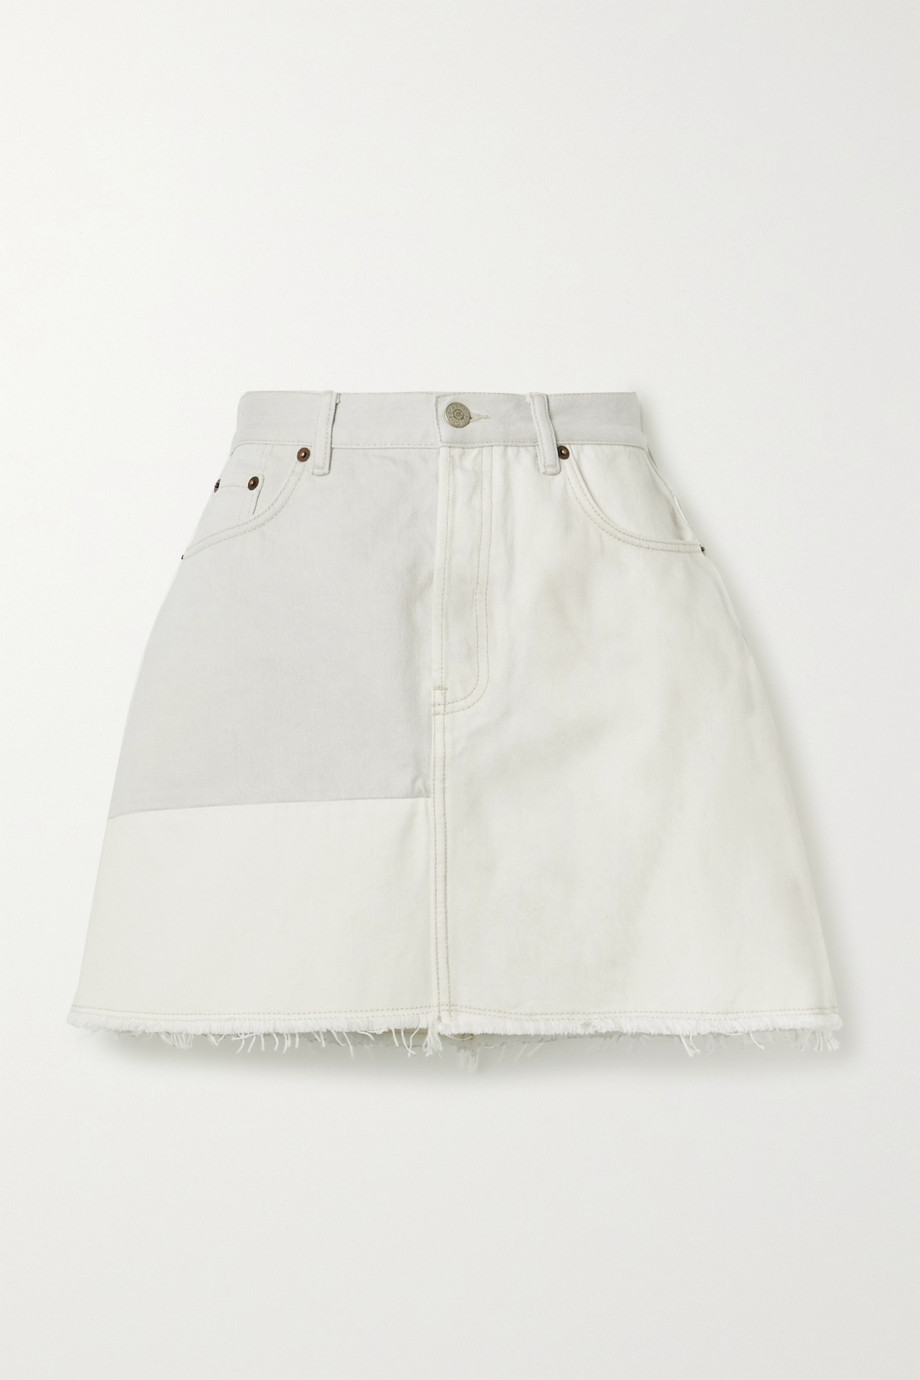 Acne Studios + NET SUSTAIN frayed patchwork organic denim mini skirt